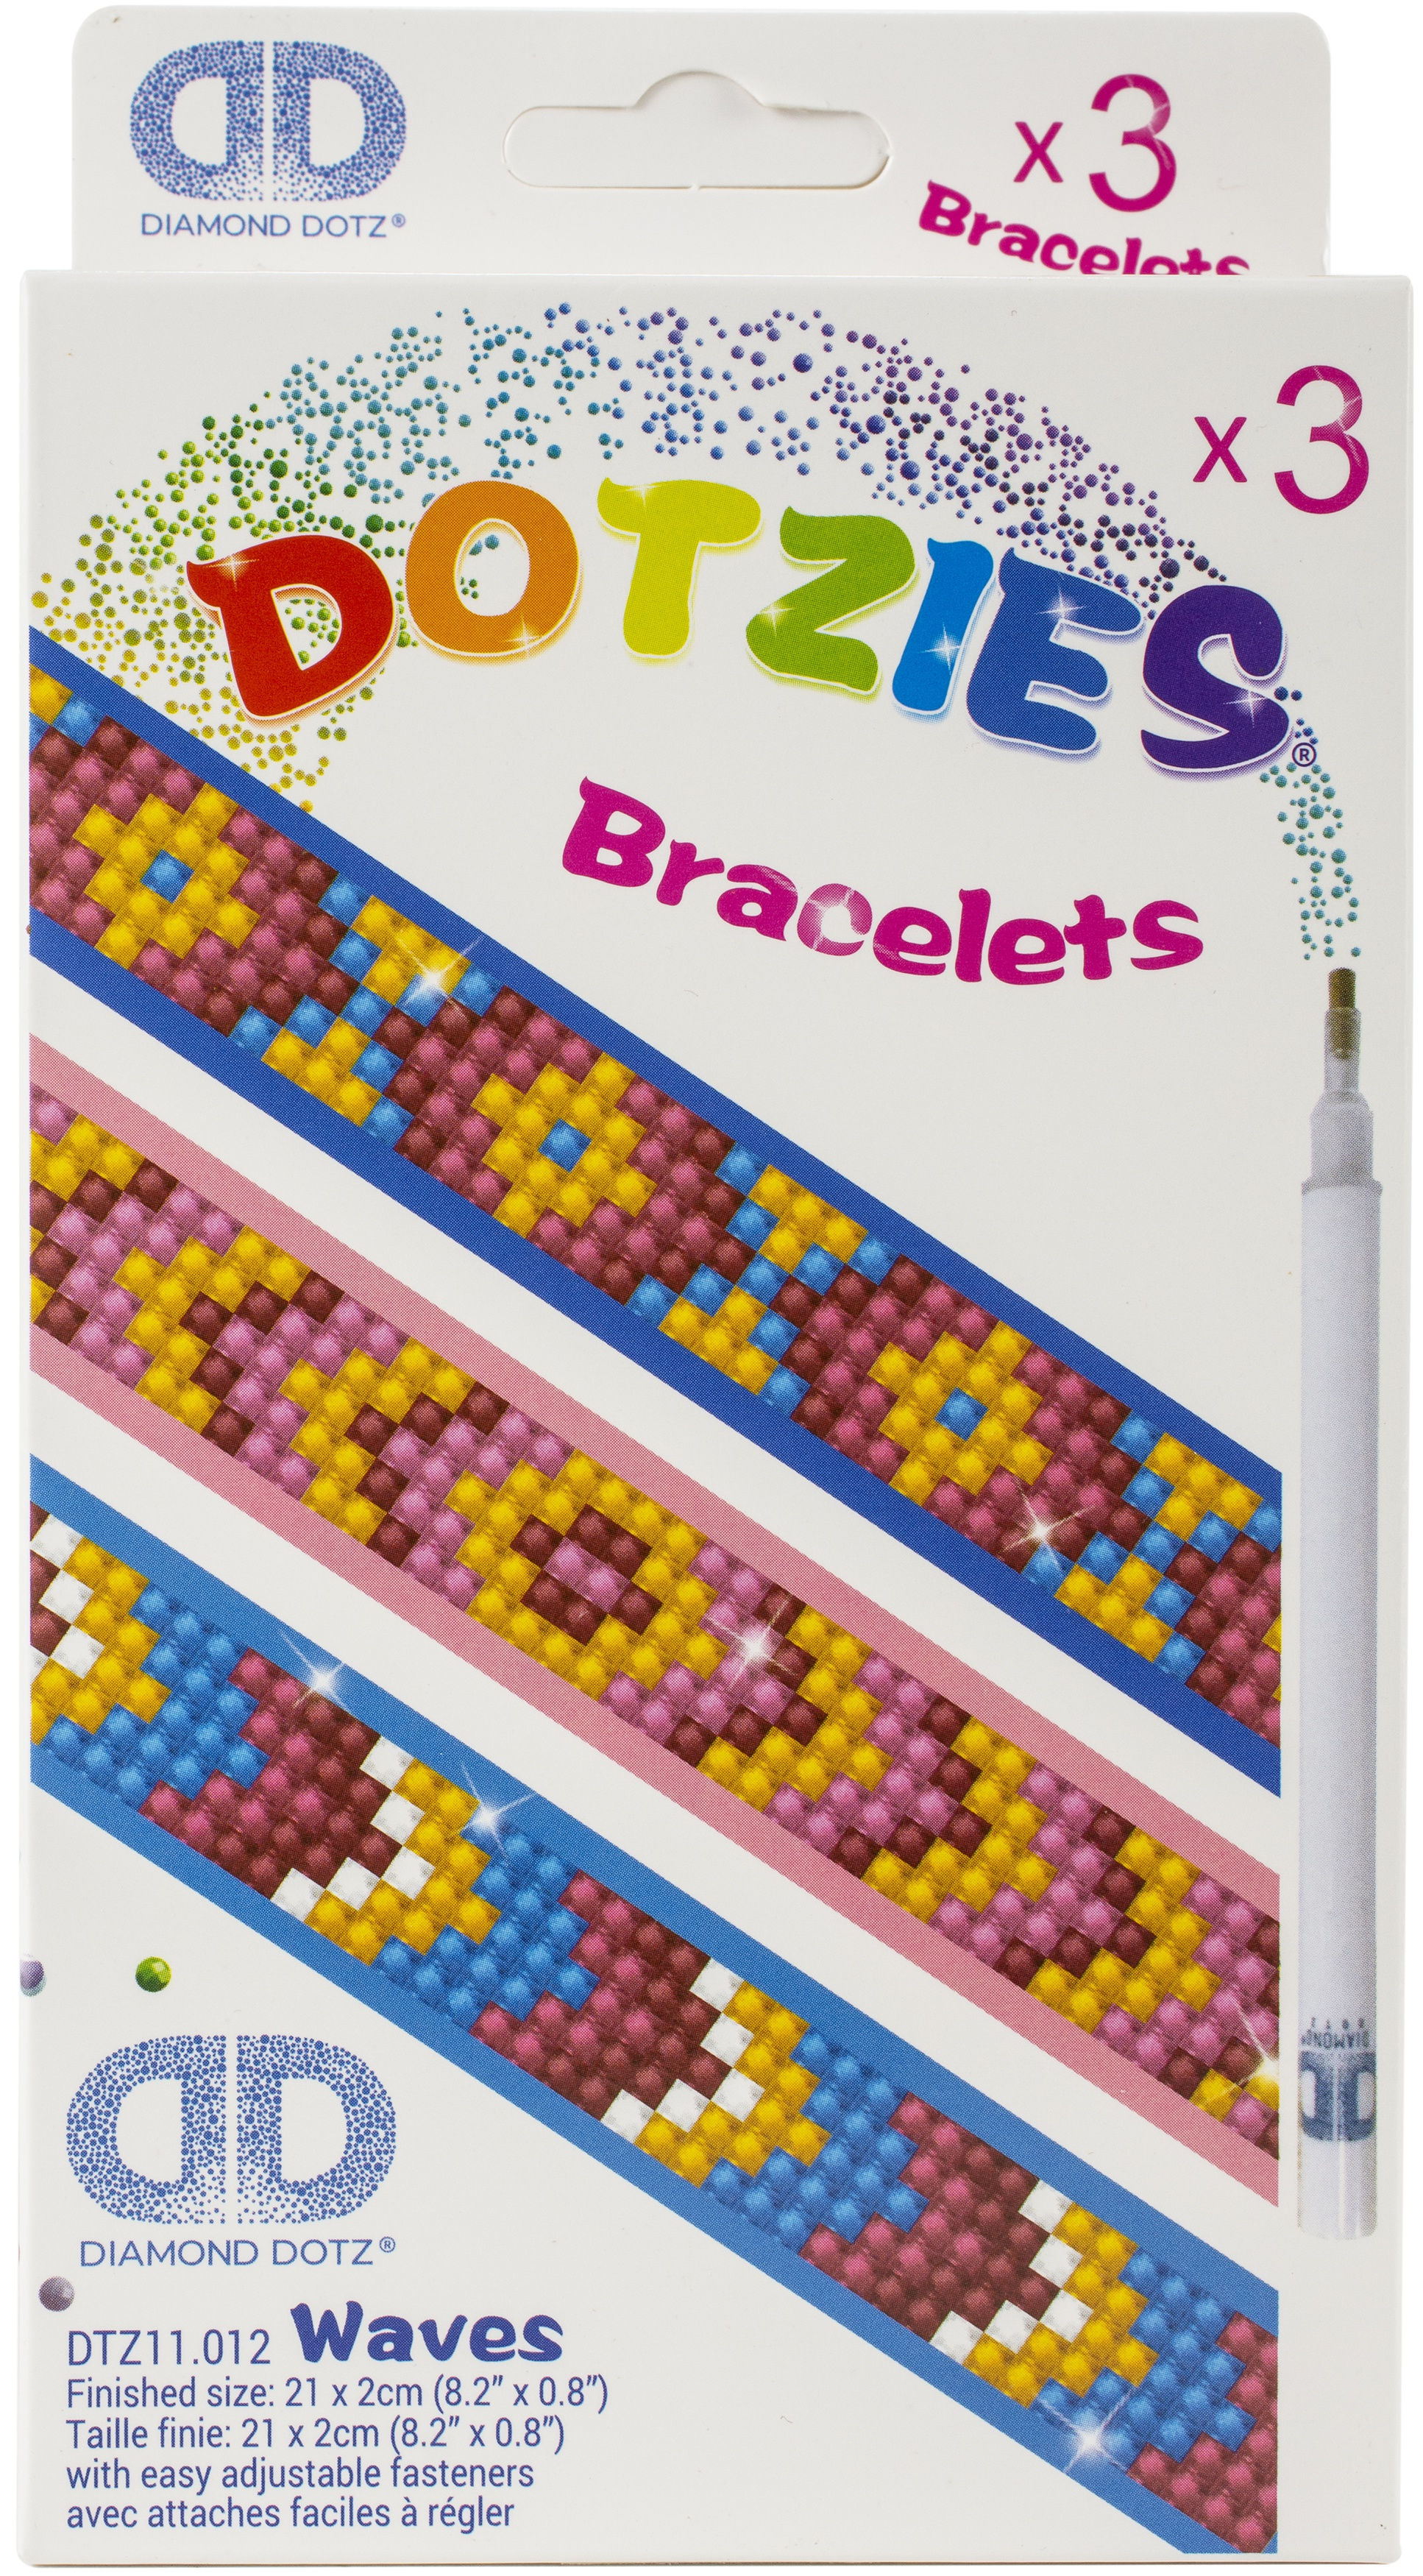 Diamond Dotz DOTZIES Bracelets Facet Art Kit 1X9-Assorted Waves 3/Pkg